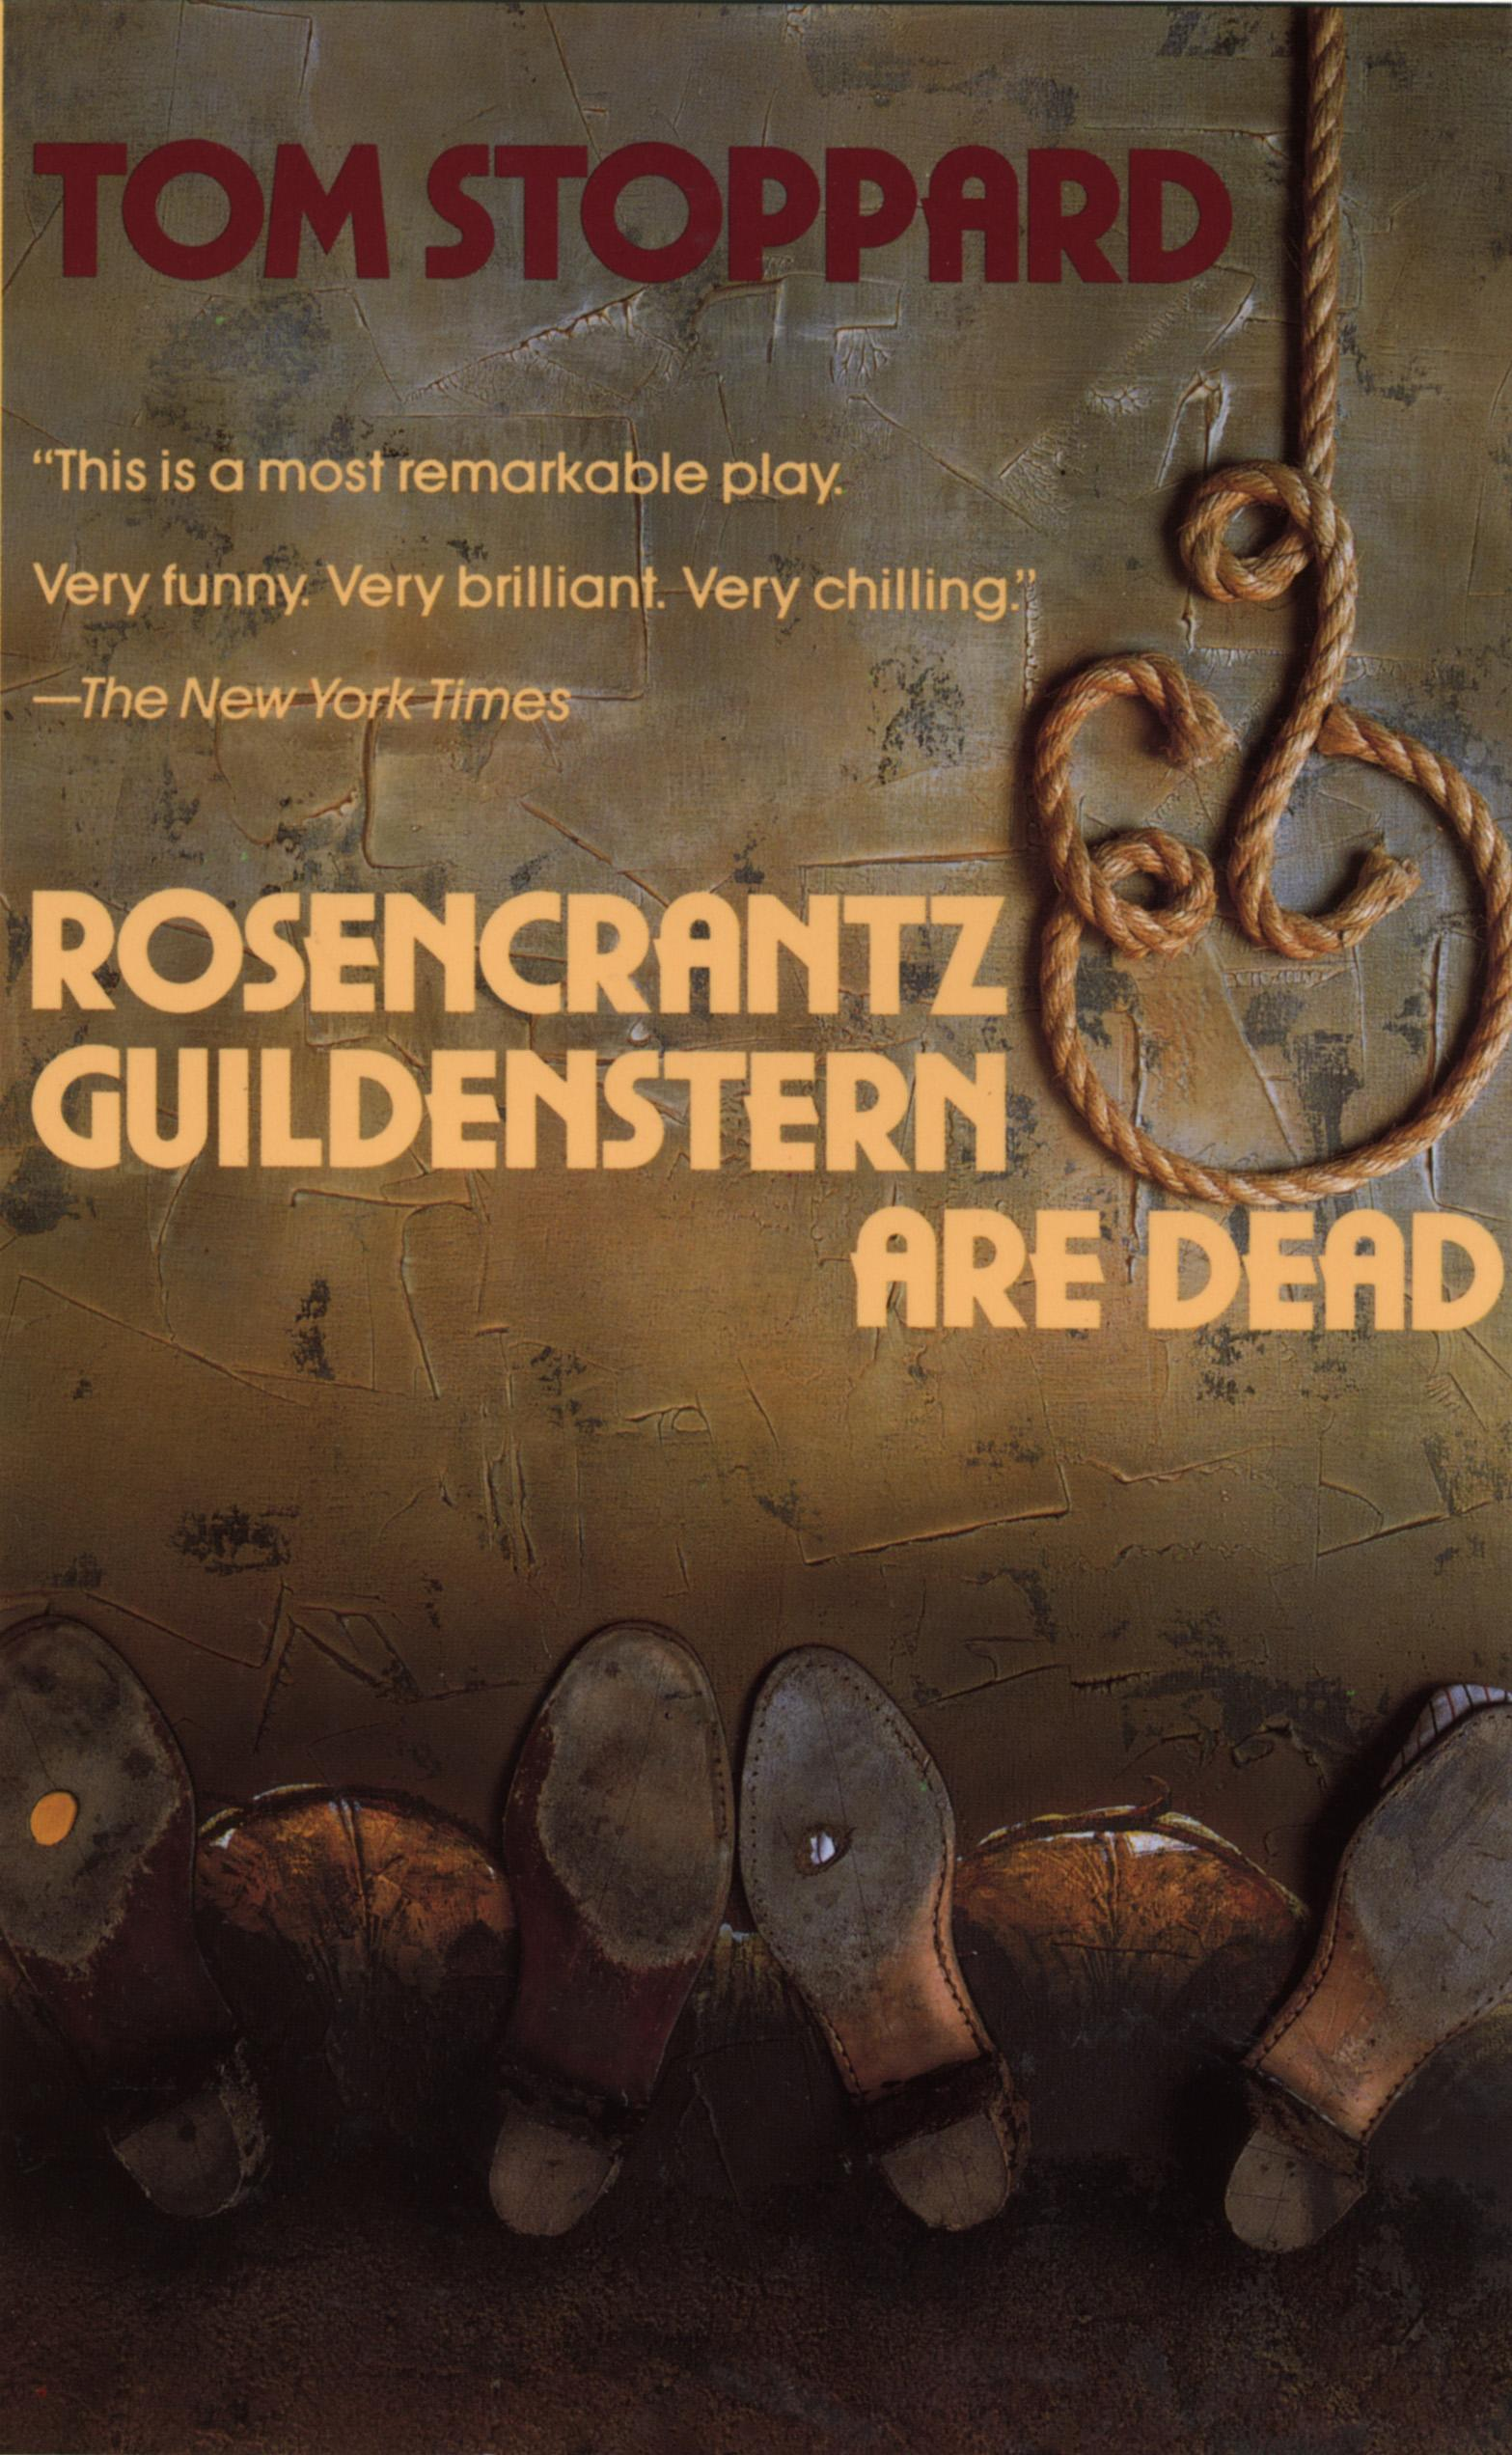 the purpose of rosencrantz and guildenstearn The purpose of rosencrantz and guildenstearn in hamlet essays: over 180,000 the purpose of rosencrantz and guildenstearn in hamlet essays, the purpose of rosencrantz and guildenstearn in hamlet term papers, the purpose of rosencrantz and guildenstearn in hamlet research paper, book reports 184 990 essays.